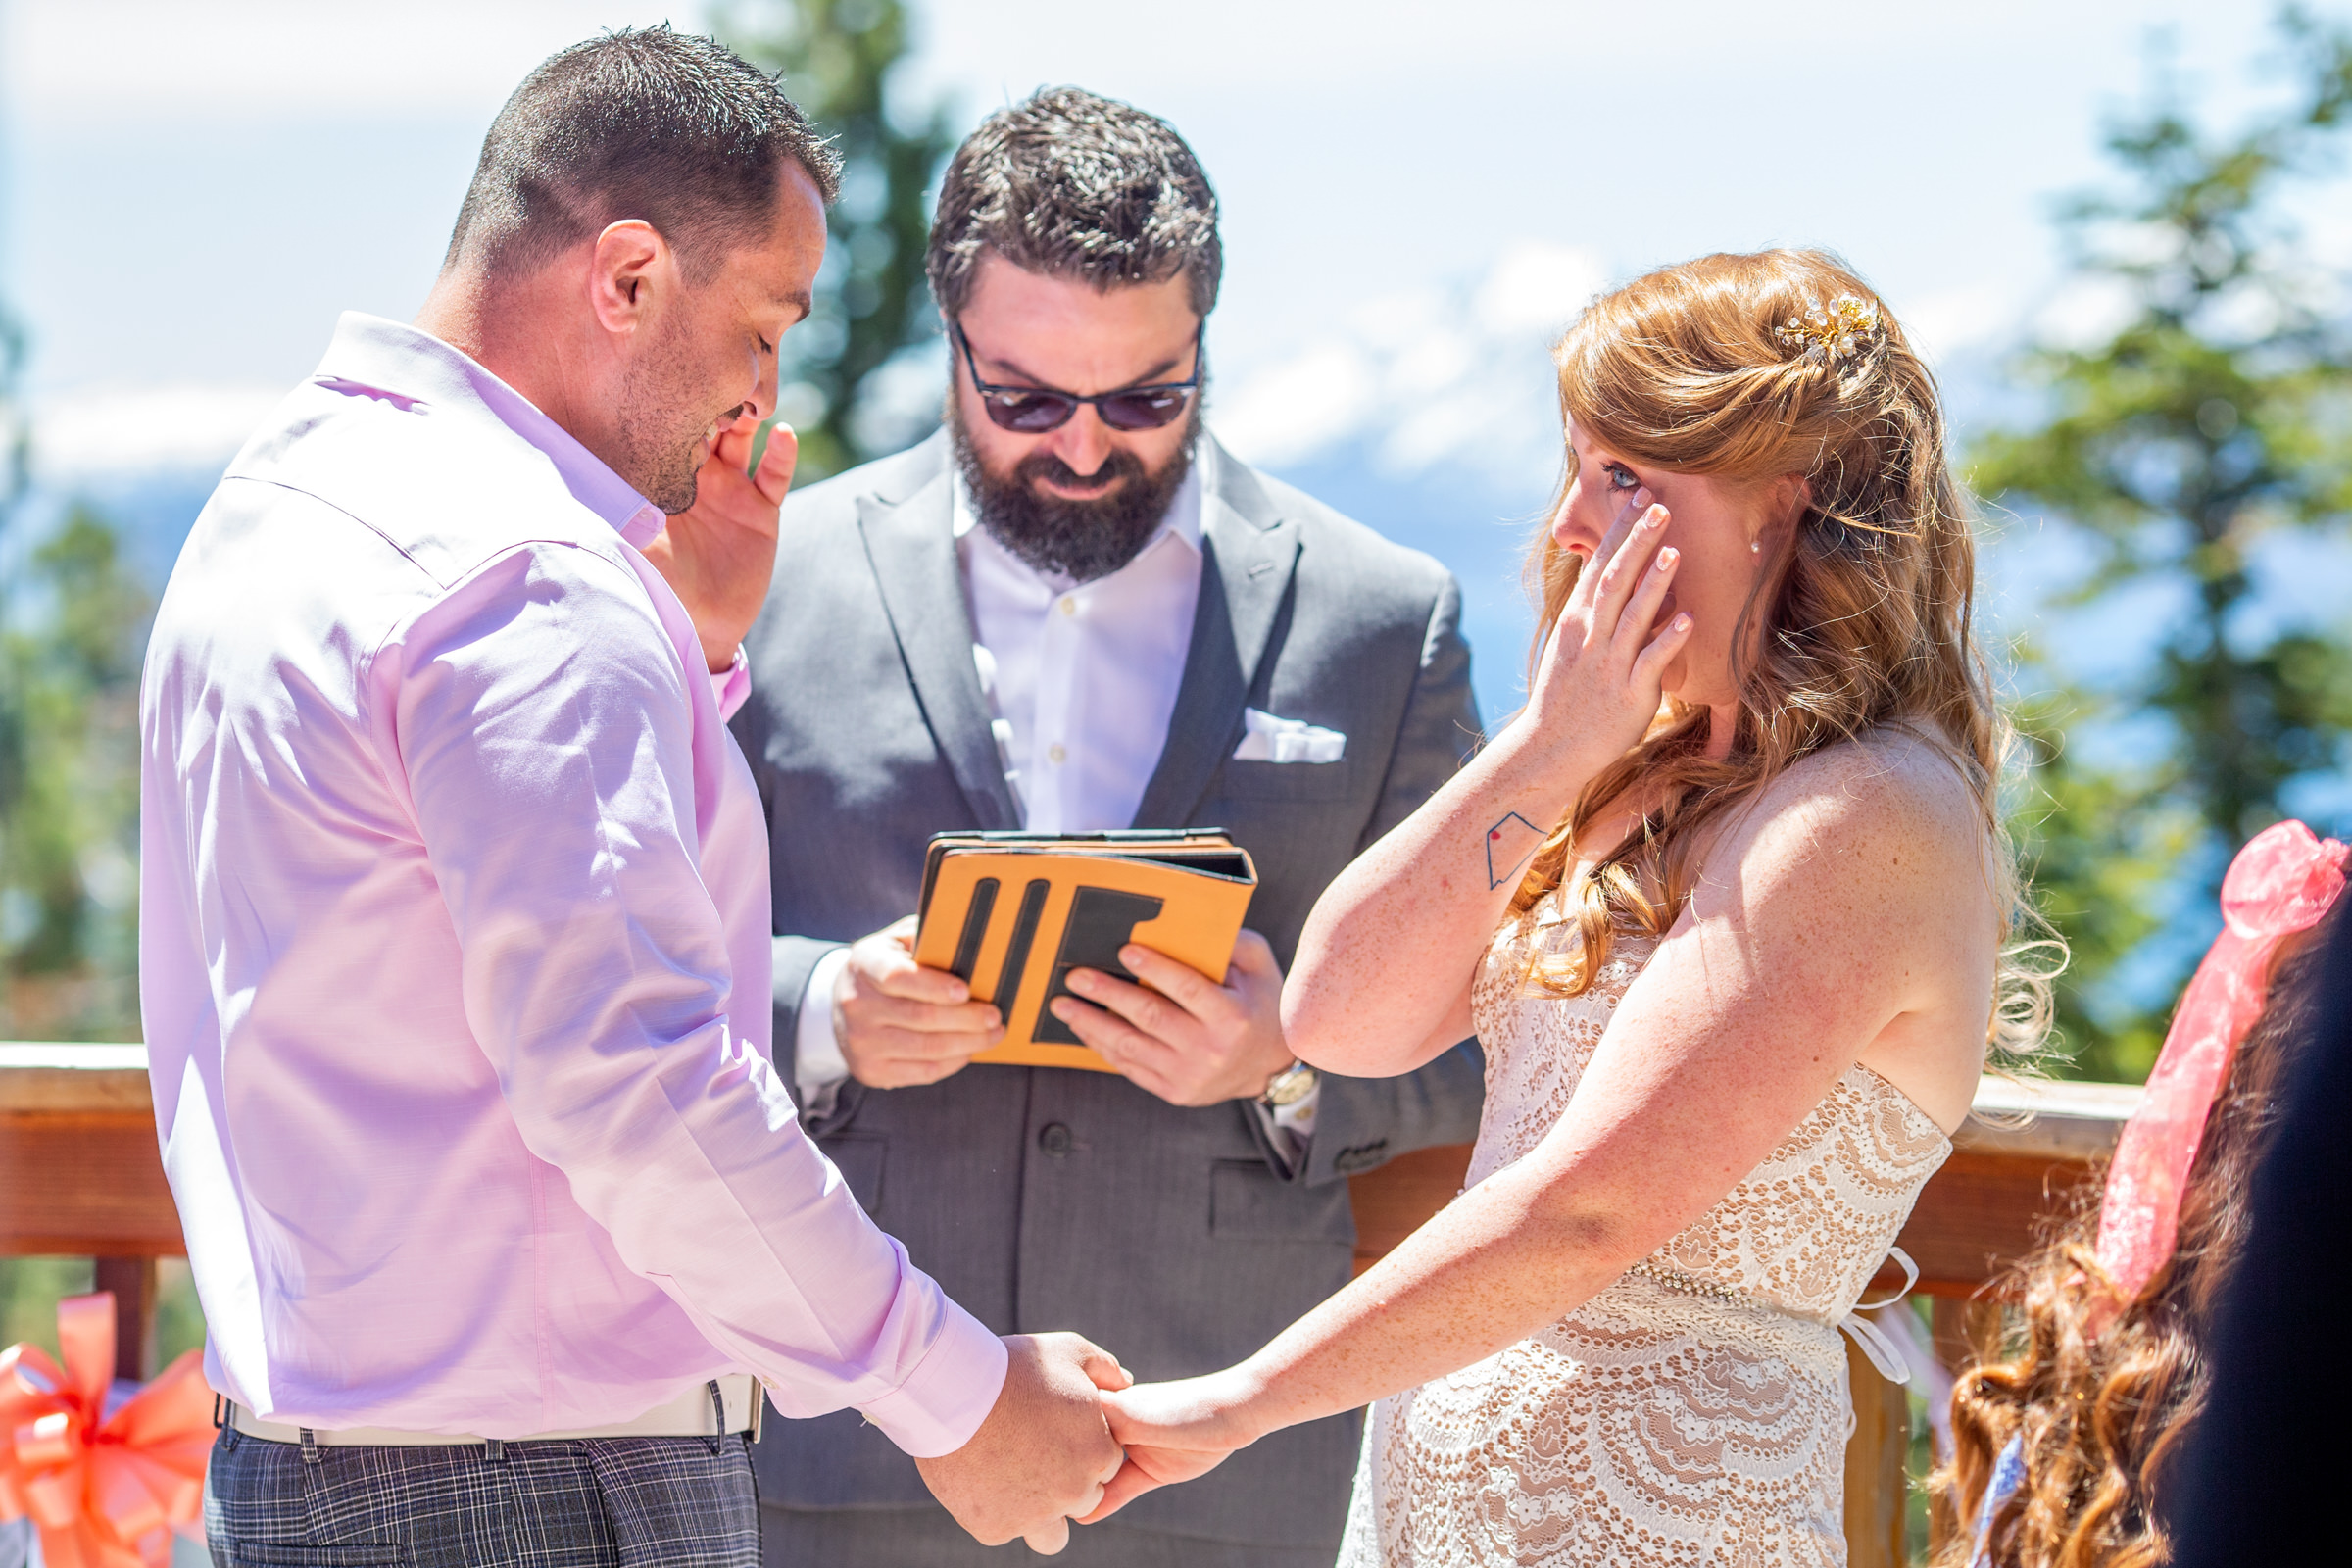 lake-tahoe-wedding-photographer-photography-best-top-north-city-kevin-sawyer-reno-truckee-bestof-incline-village-bride-groom-ceremony-emotional-ginger-redhead